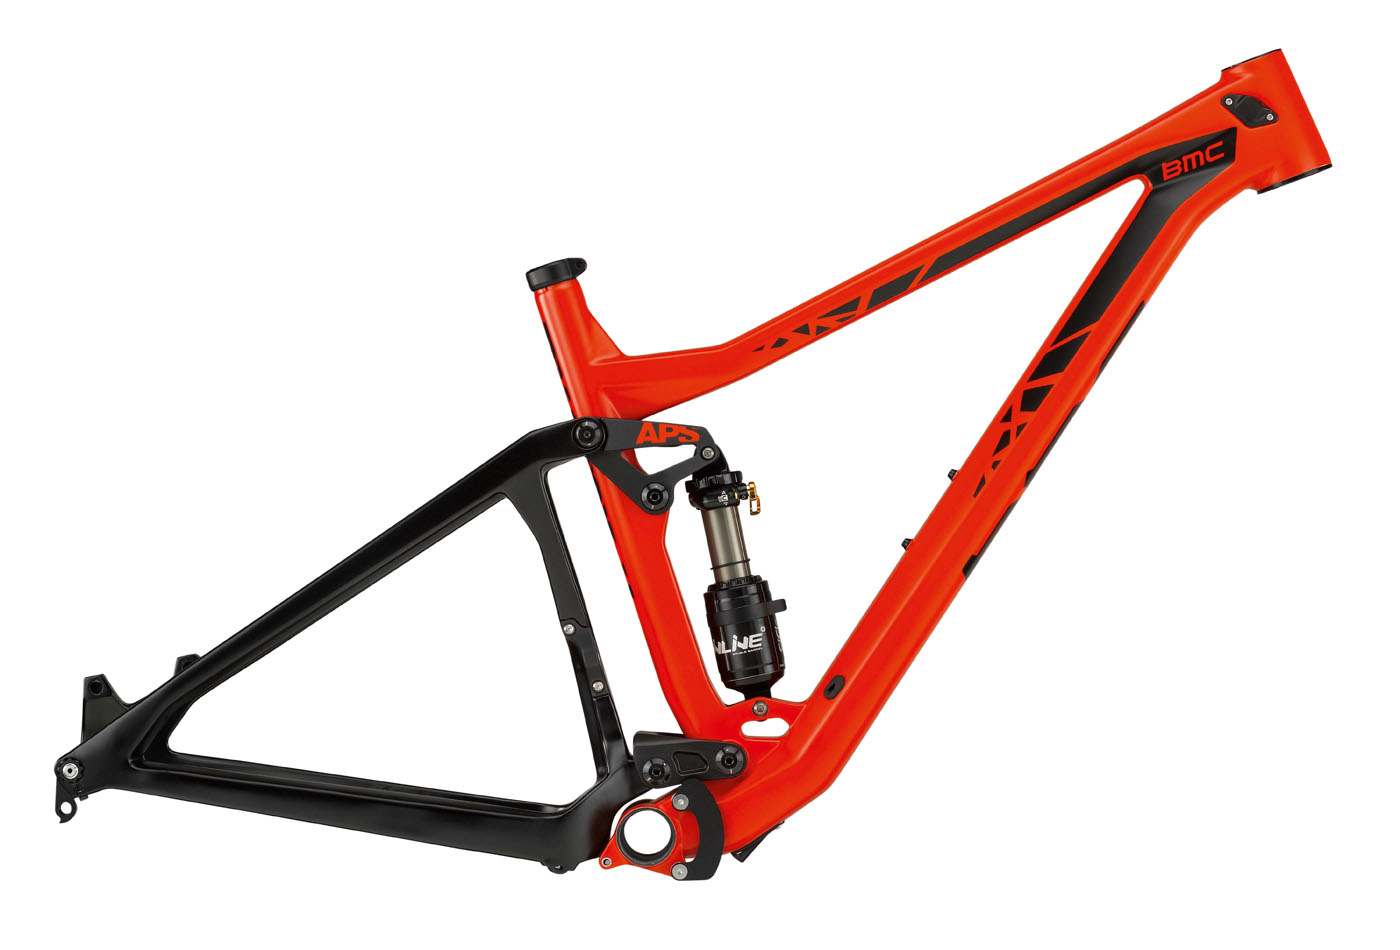 bmc mountainbike onlineshop hardtails fully s rad. Black Bedroom Furniture Sets. Home Design Ideas